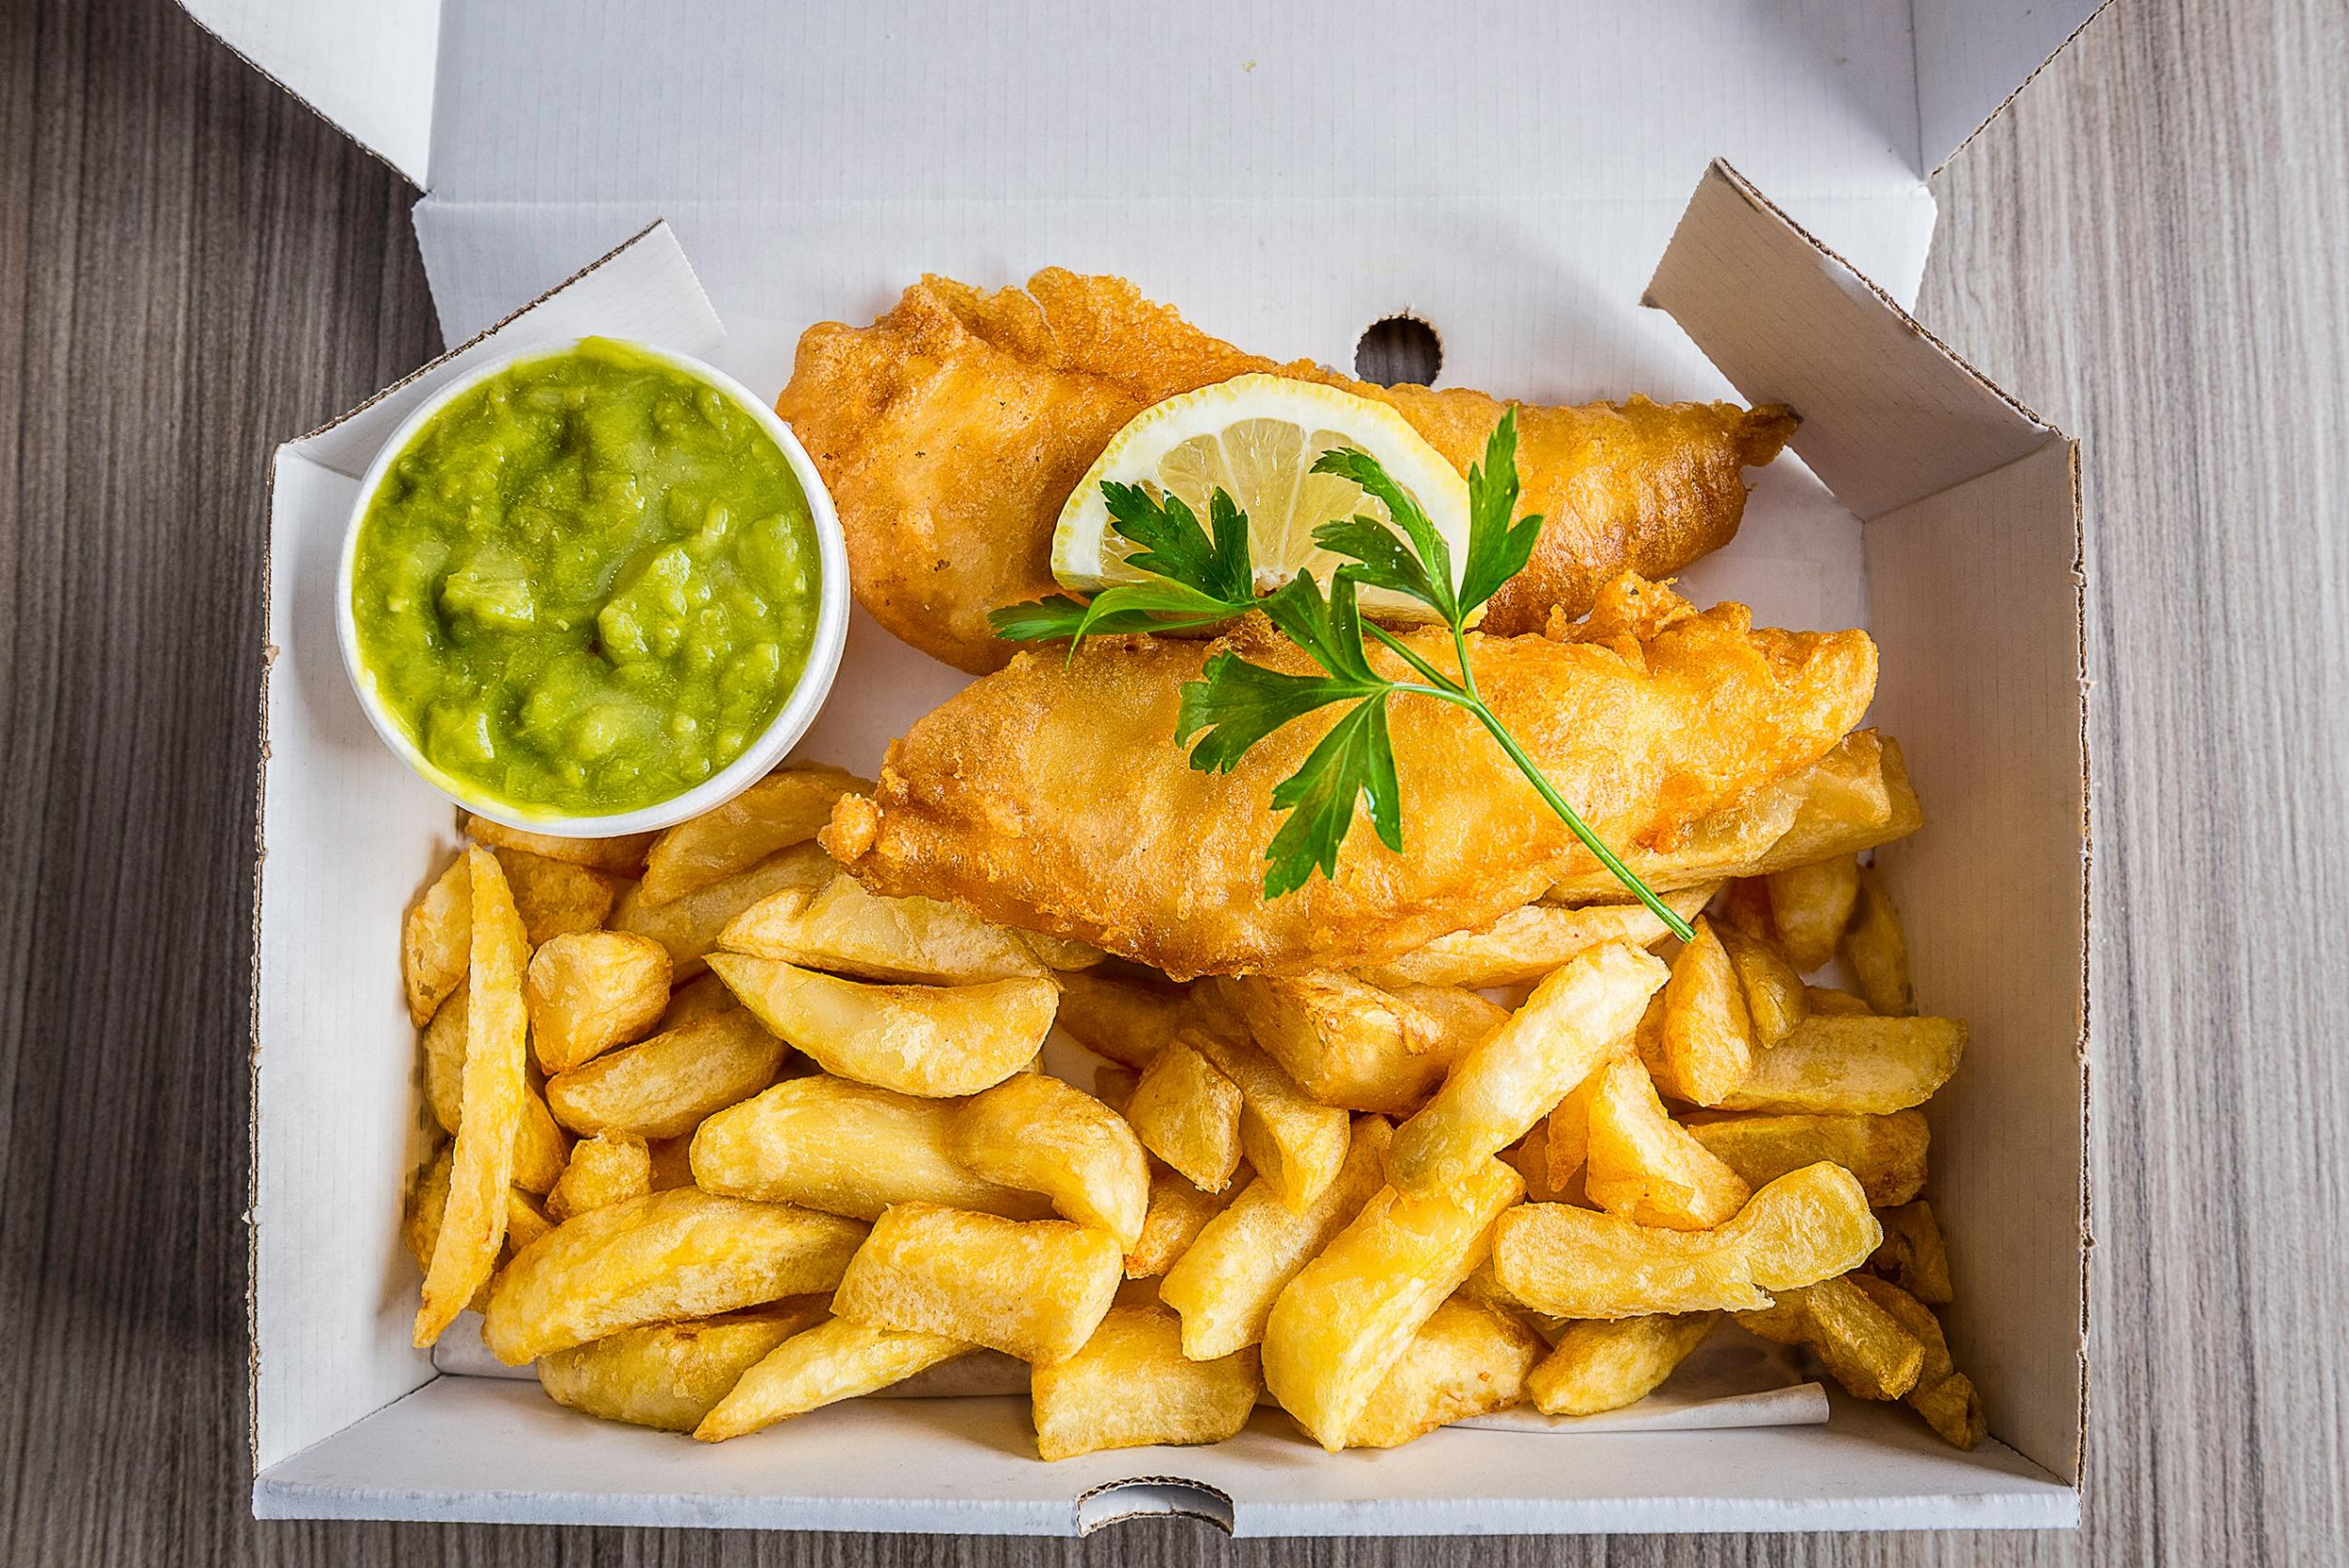 The UK's top fish and chip shops have been revealed